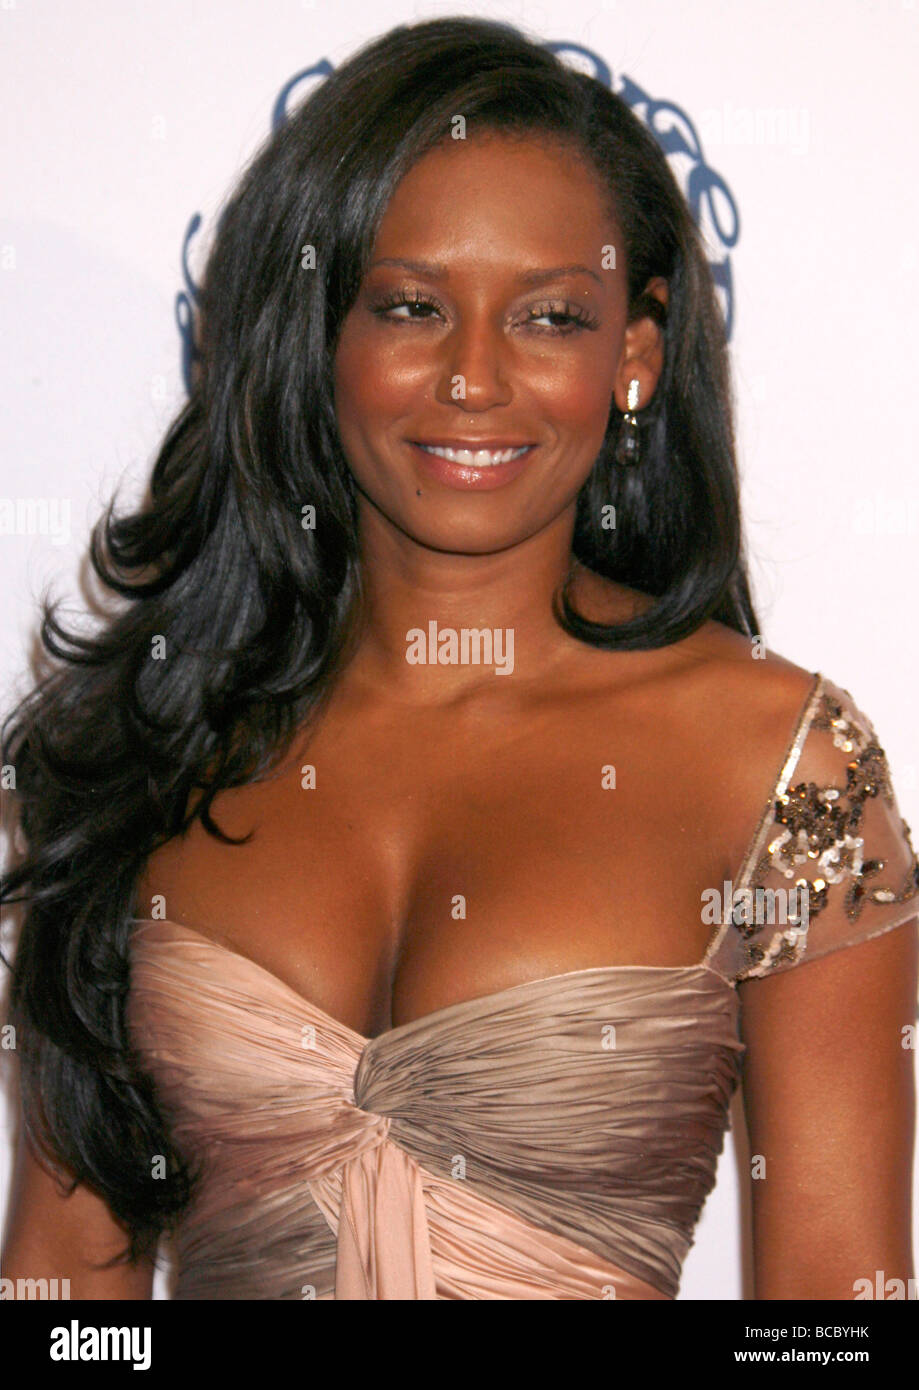 melanie brown 2018melanie brown imdb, melanie brown interview, melanie brown dancing with the stars, melanie brown nutritionist, melanie brown instagram, melanie brown axminster, melanie brown net worth, melanie brown america's got talent, melanie brown, melanie brown nutrition, melanie brown spice girl, melanie brown brutally honest, melanie brown wiki, melanie brown book, melanie brown stephen belafonte, melanie brown wikipedia, melanie brown 2018, melanie brown songs, melanie brown x factor, melanie brown biography